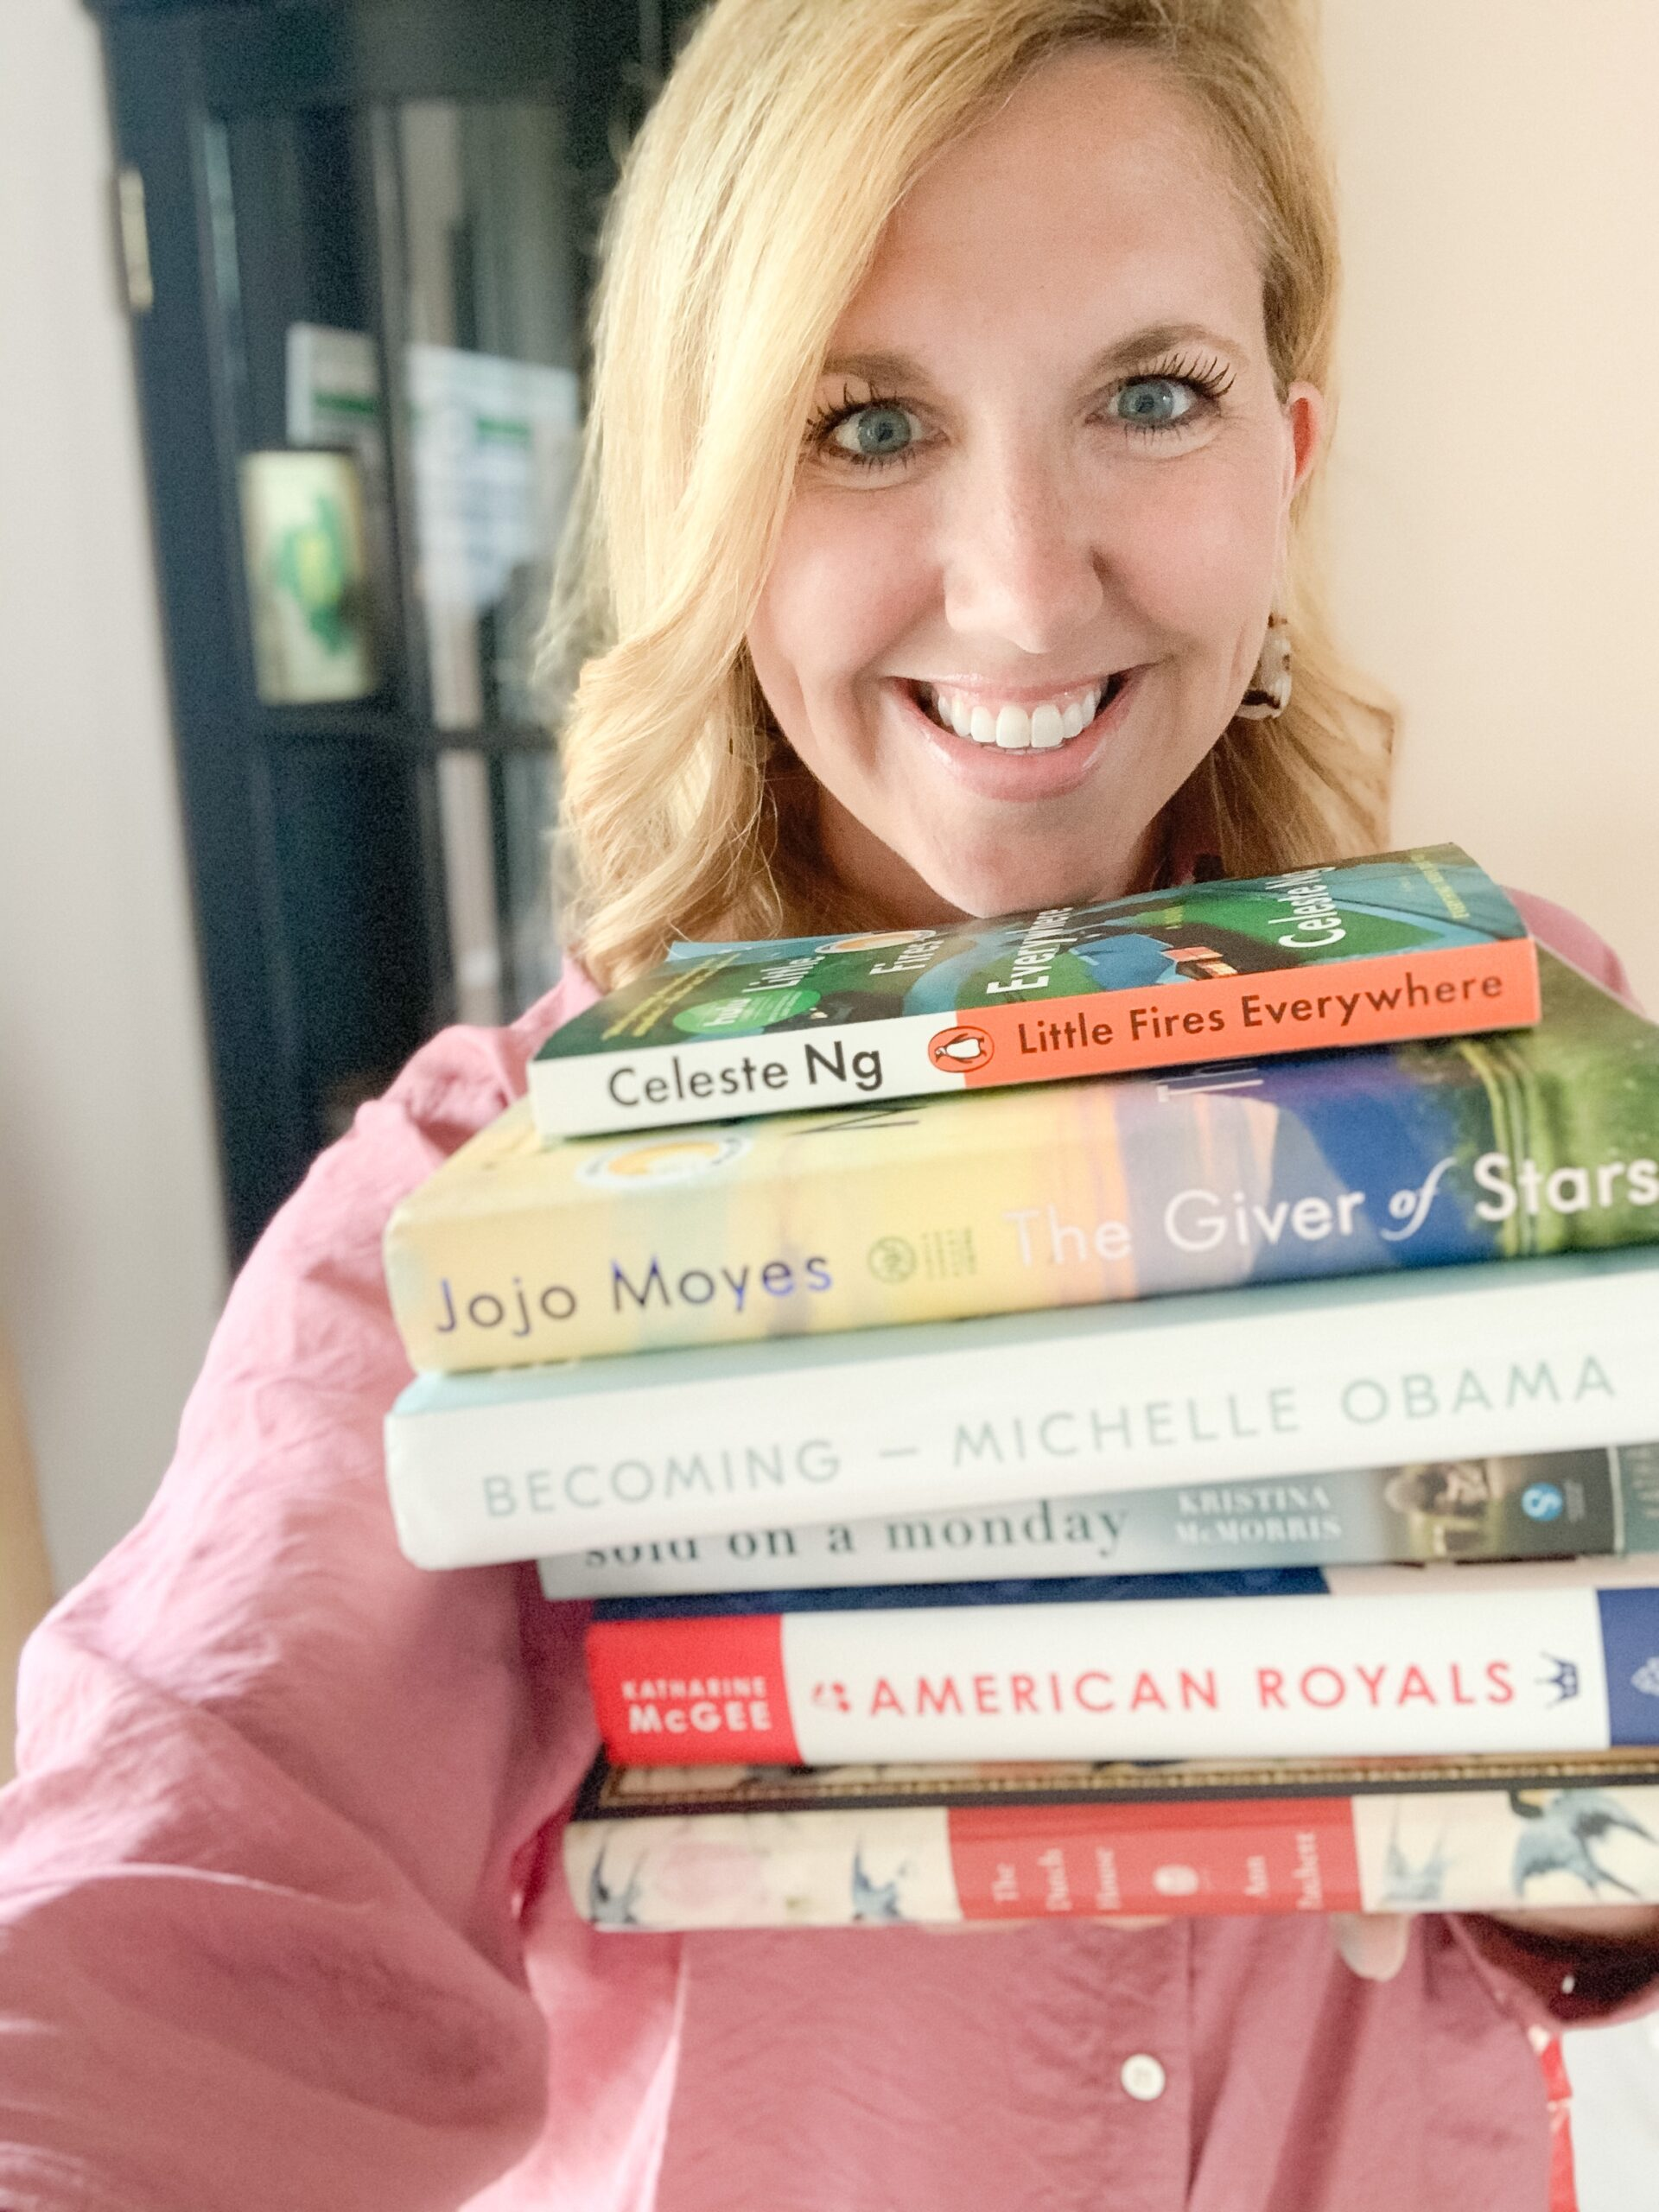 blonde woman with stack of popular books for book-a-month reading challenge